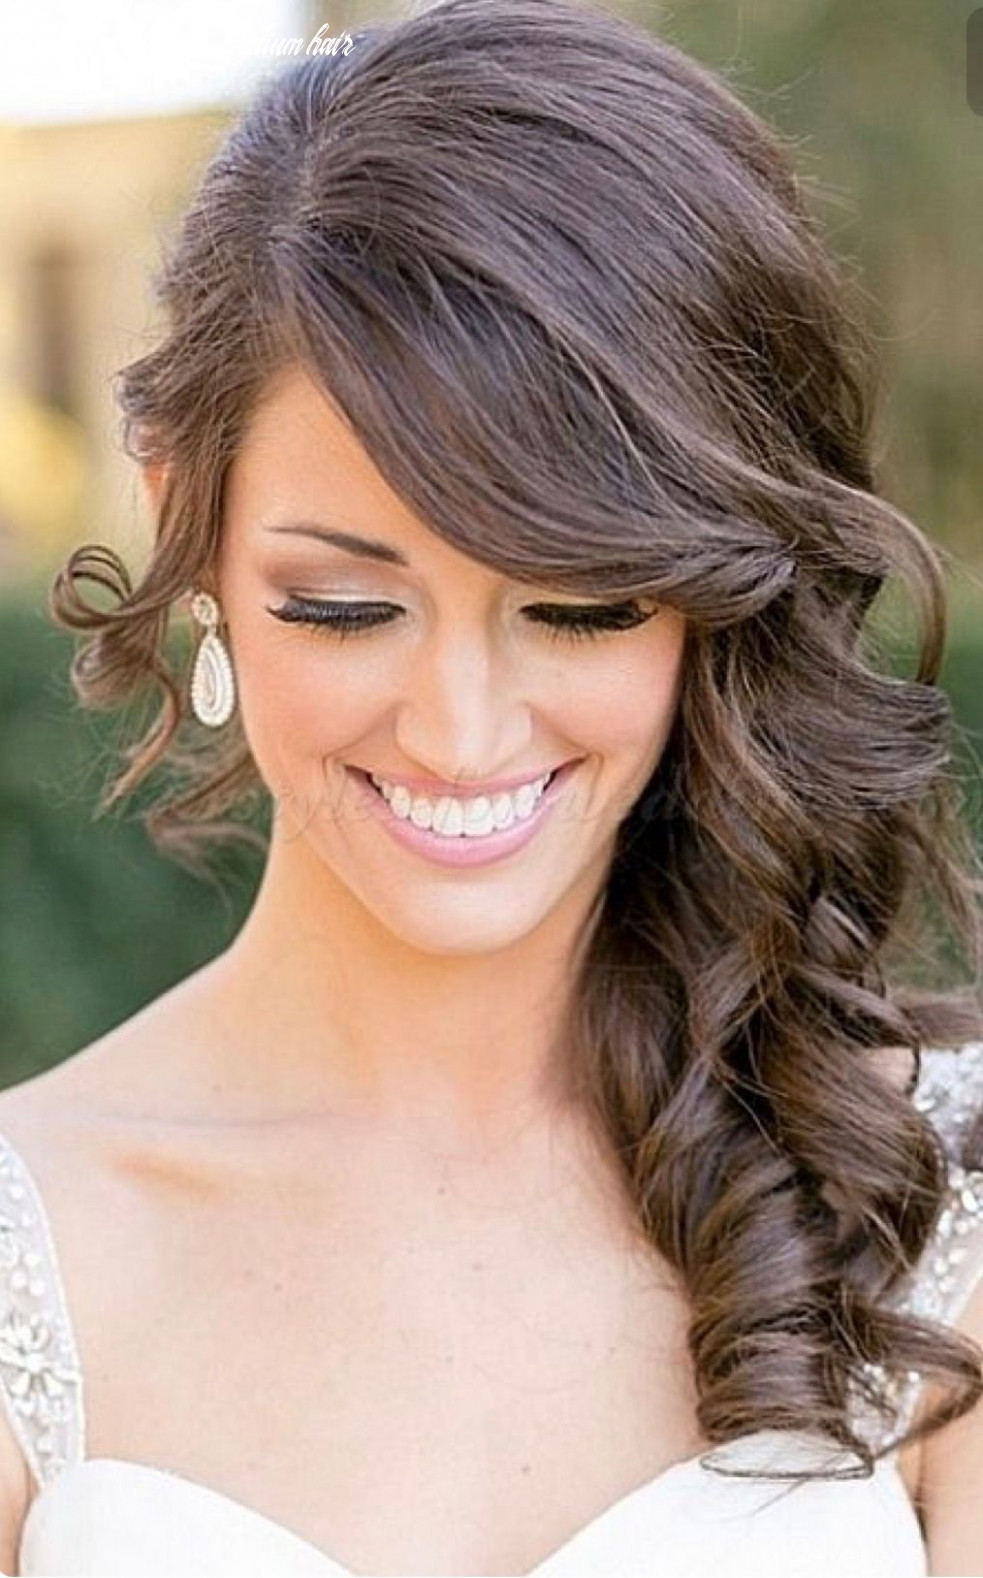 Pin by afnan alsulaimany on style | wedding hairstyles for medium